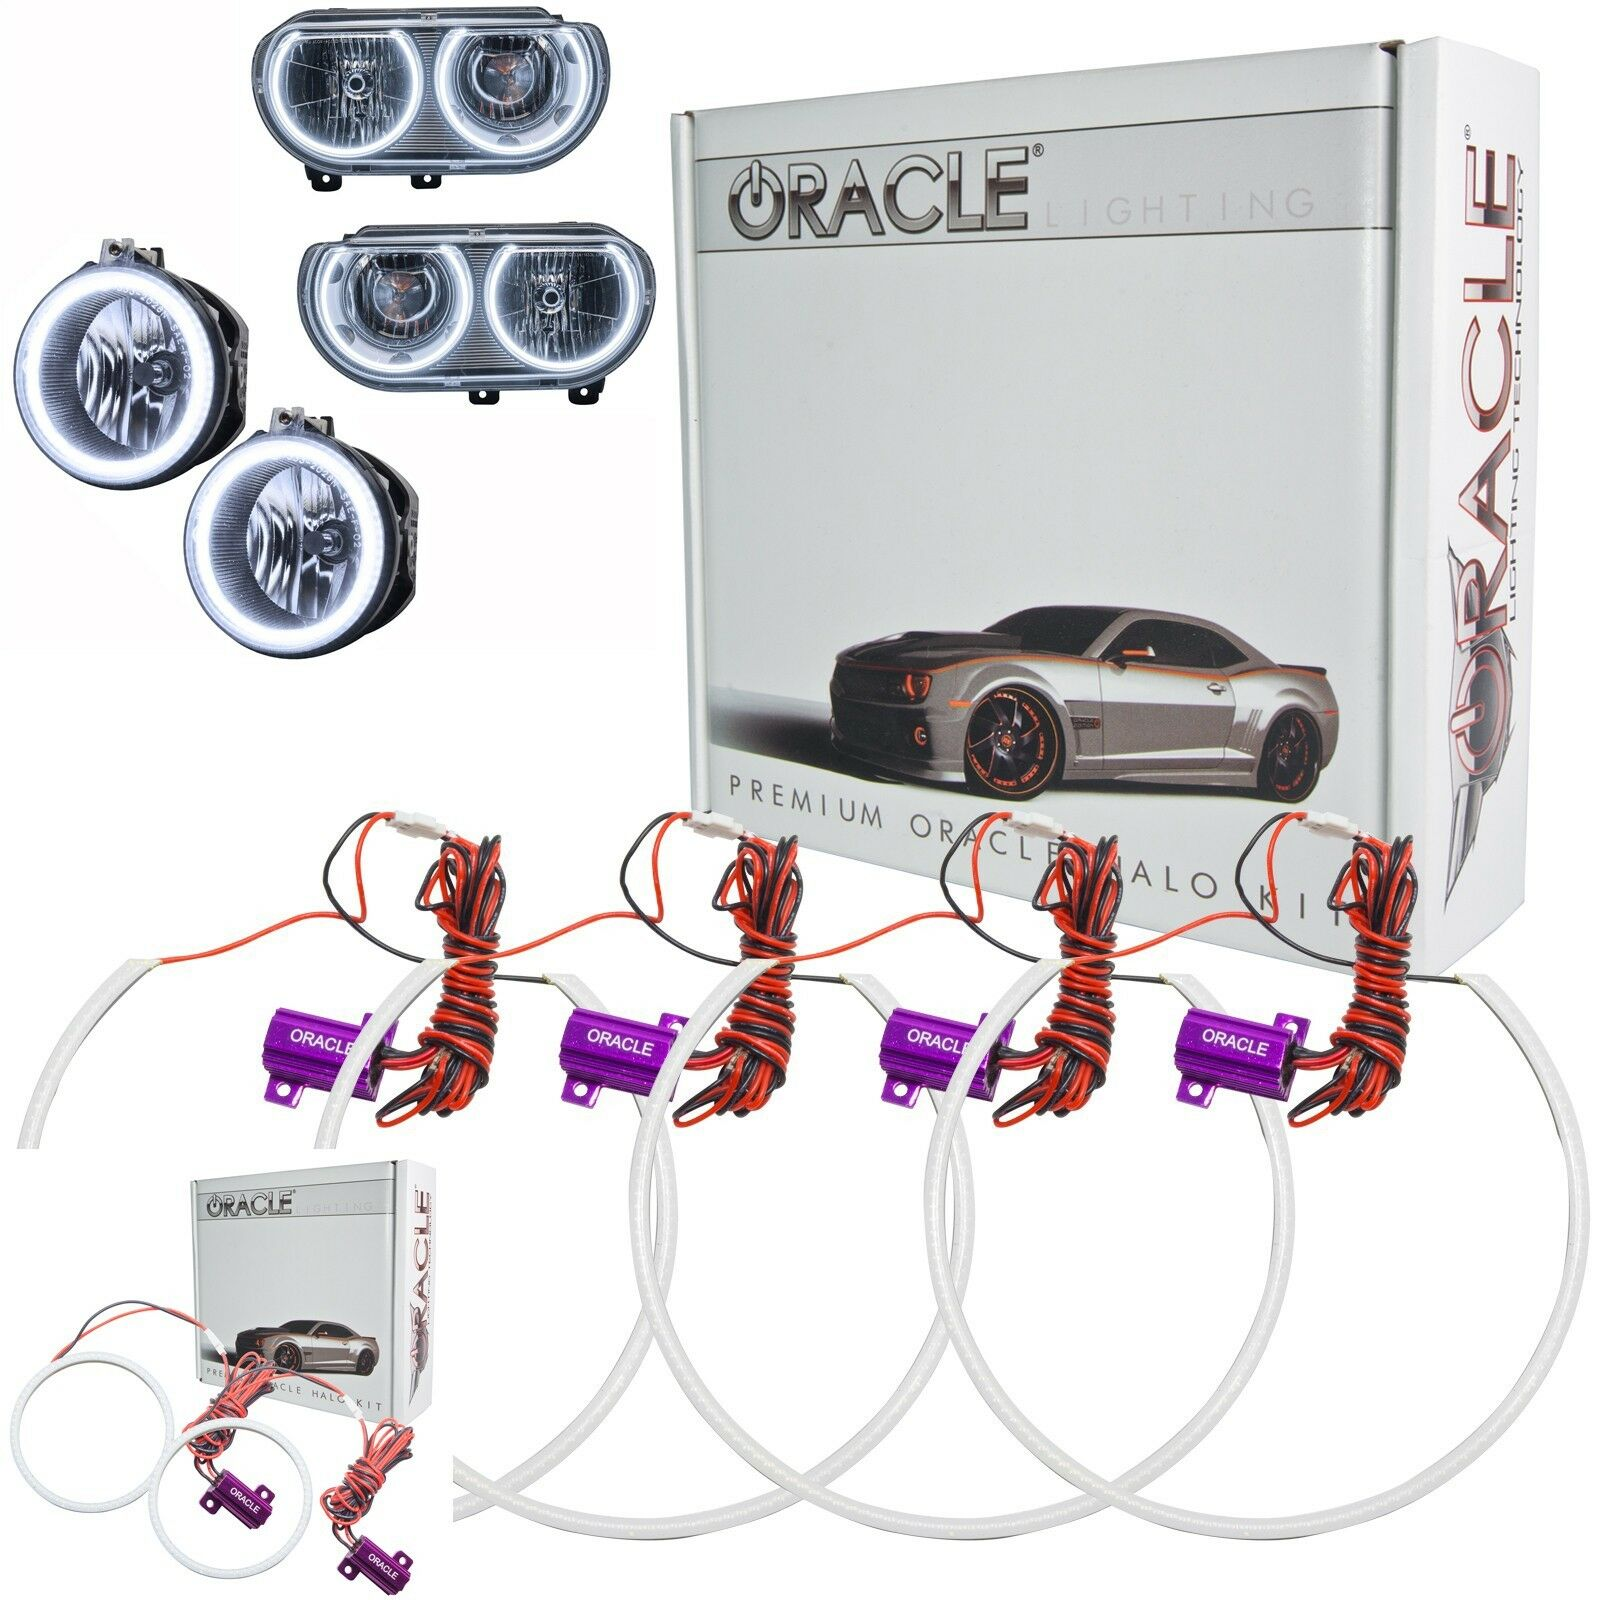 Acura Dealer In Brooklyn: ORACLE Halo Kit For NON-Project Headlights&Fog Lights For